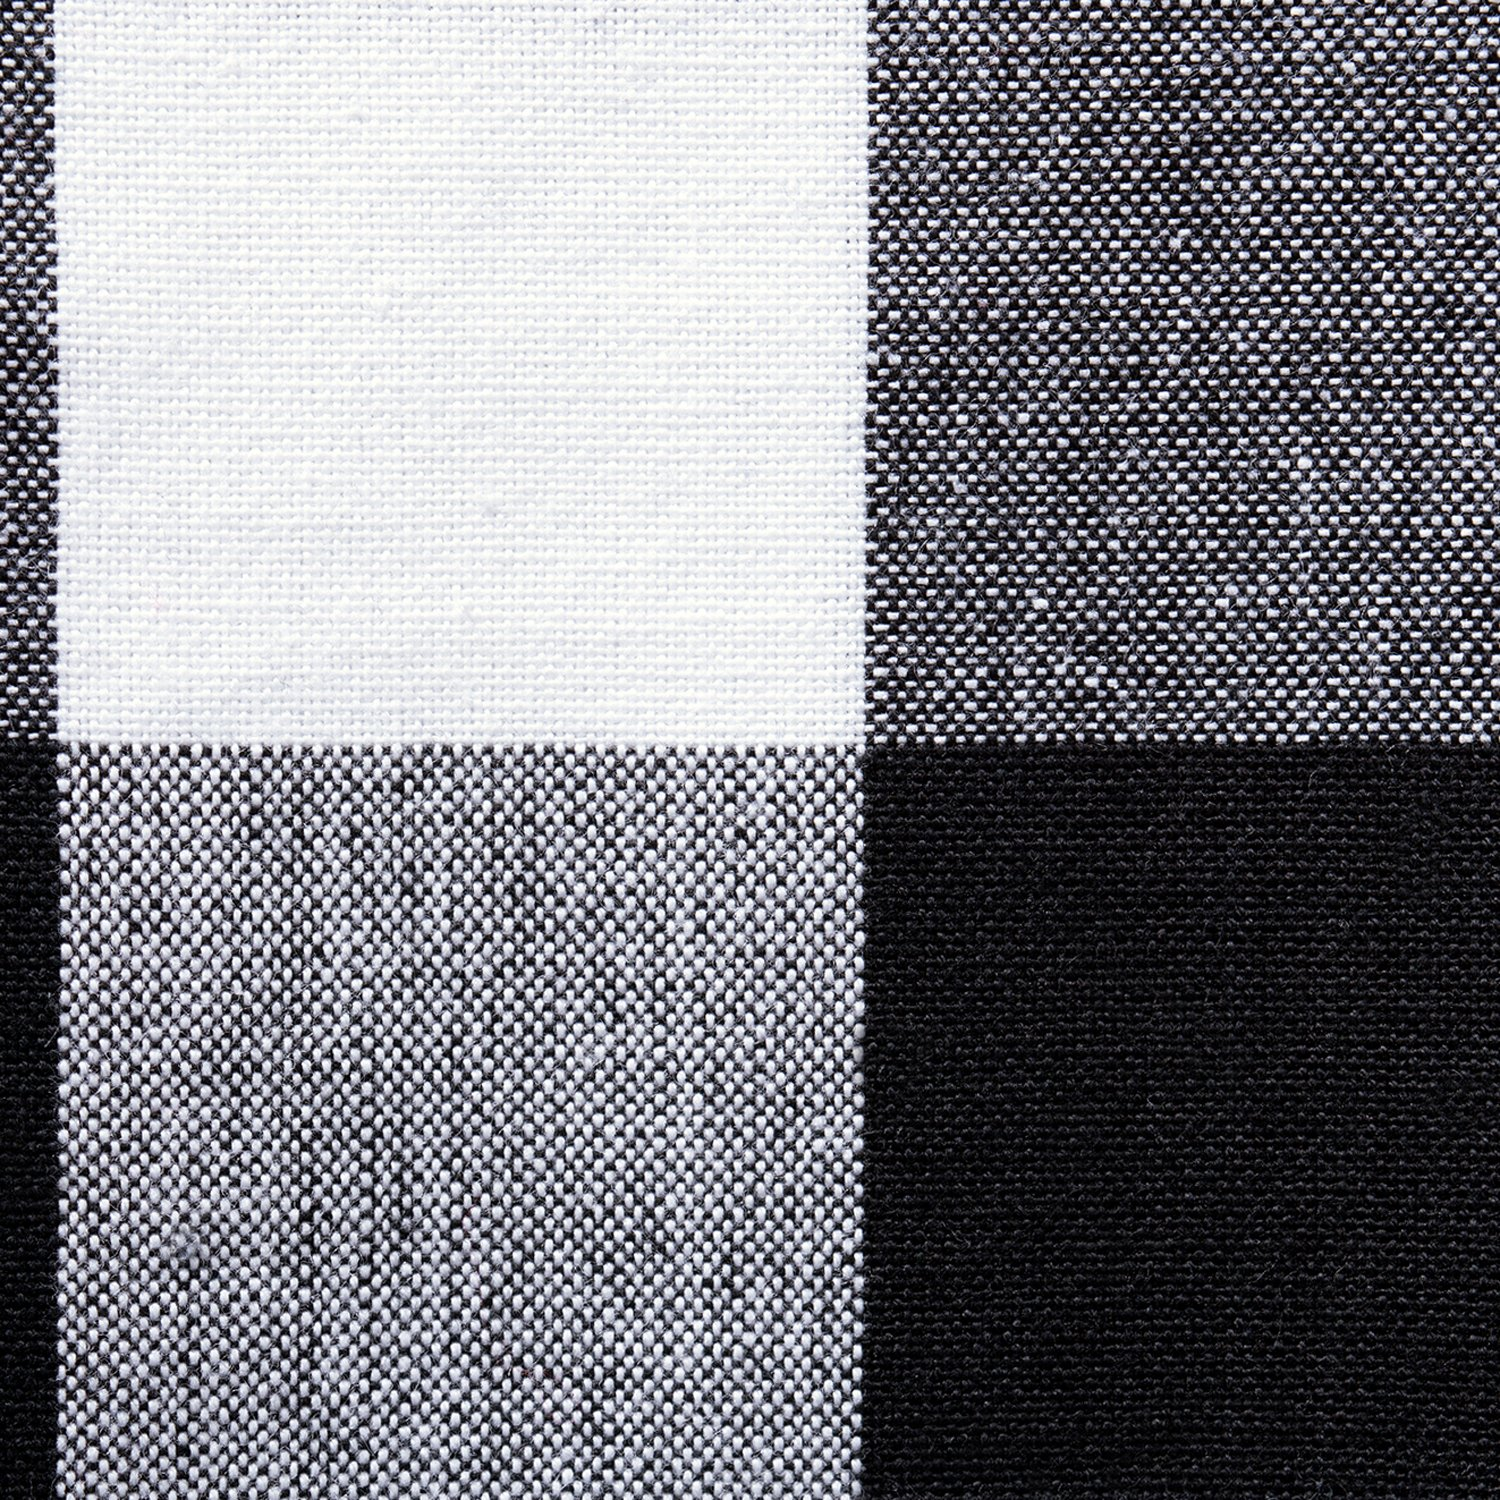 DII Cotton Buffalo Check Table Runner for Family Dinners or Gatherings, Indoor or Outdoor Parties, & Everyday Use (14x108'',  Seats 8-10 People), Black & White by DII (Image #2)